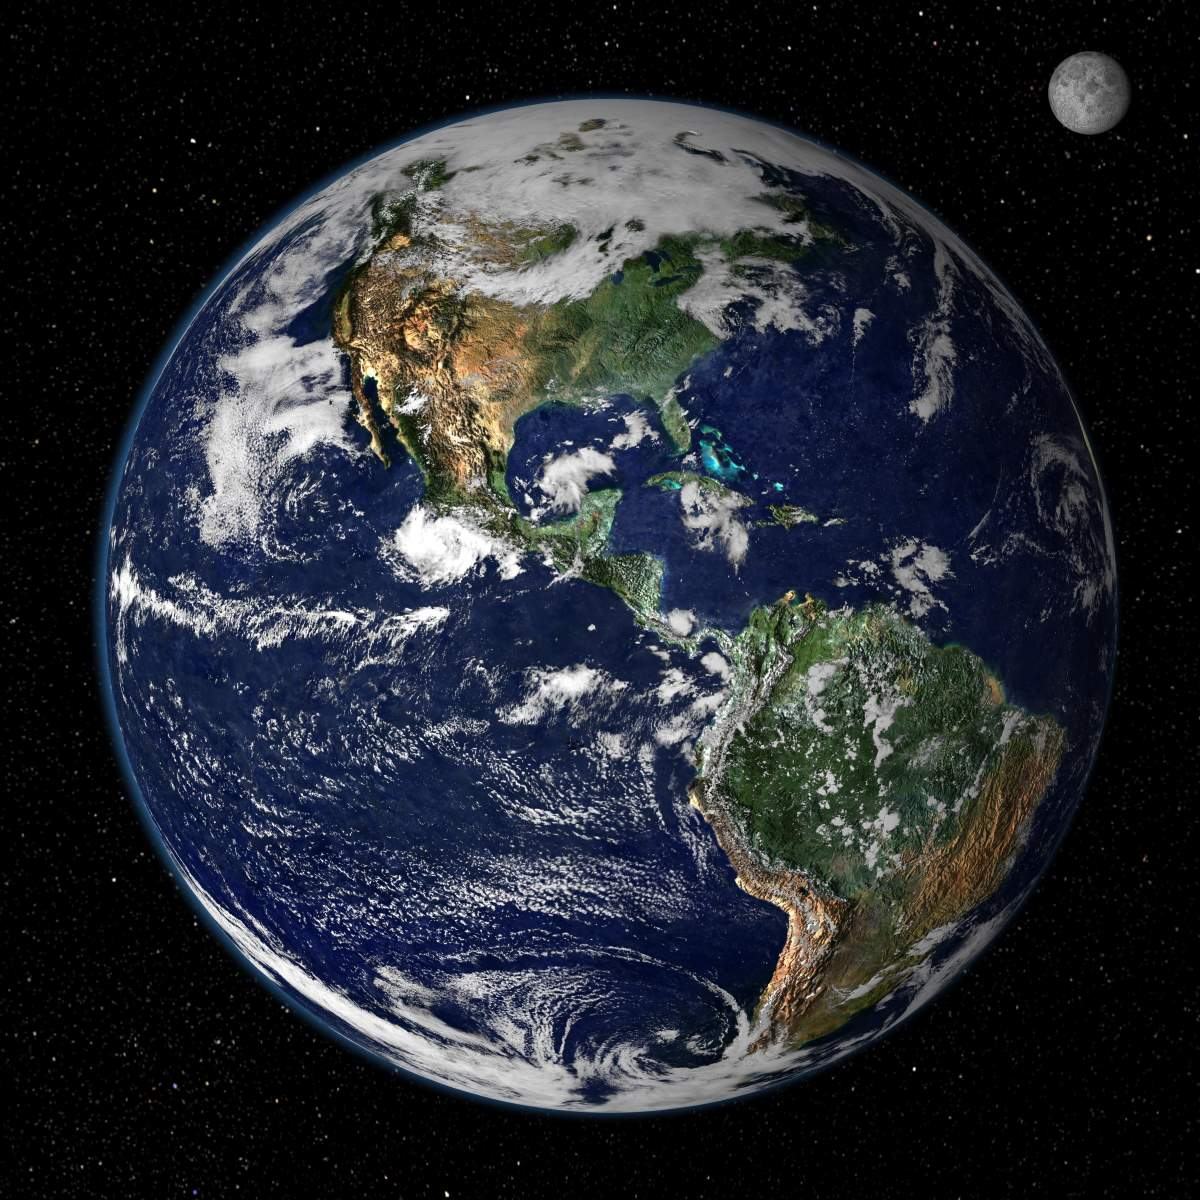 Common Misconceptions about Earth: Earth and Moon image (NASA)